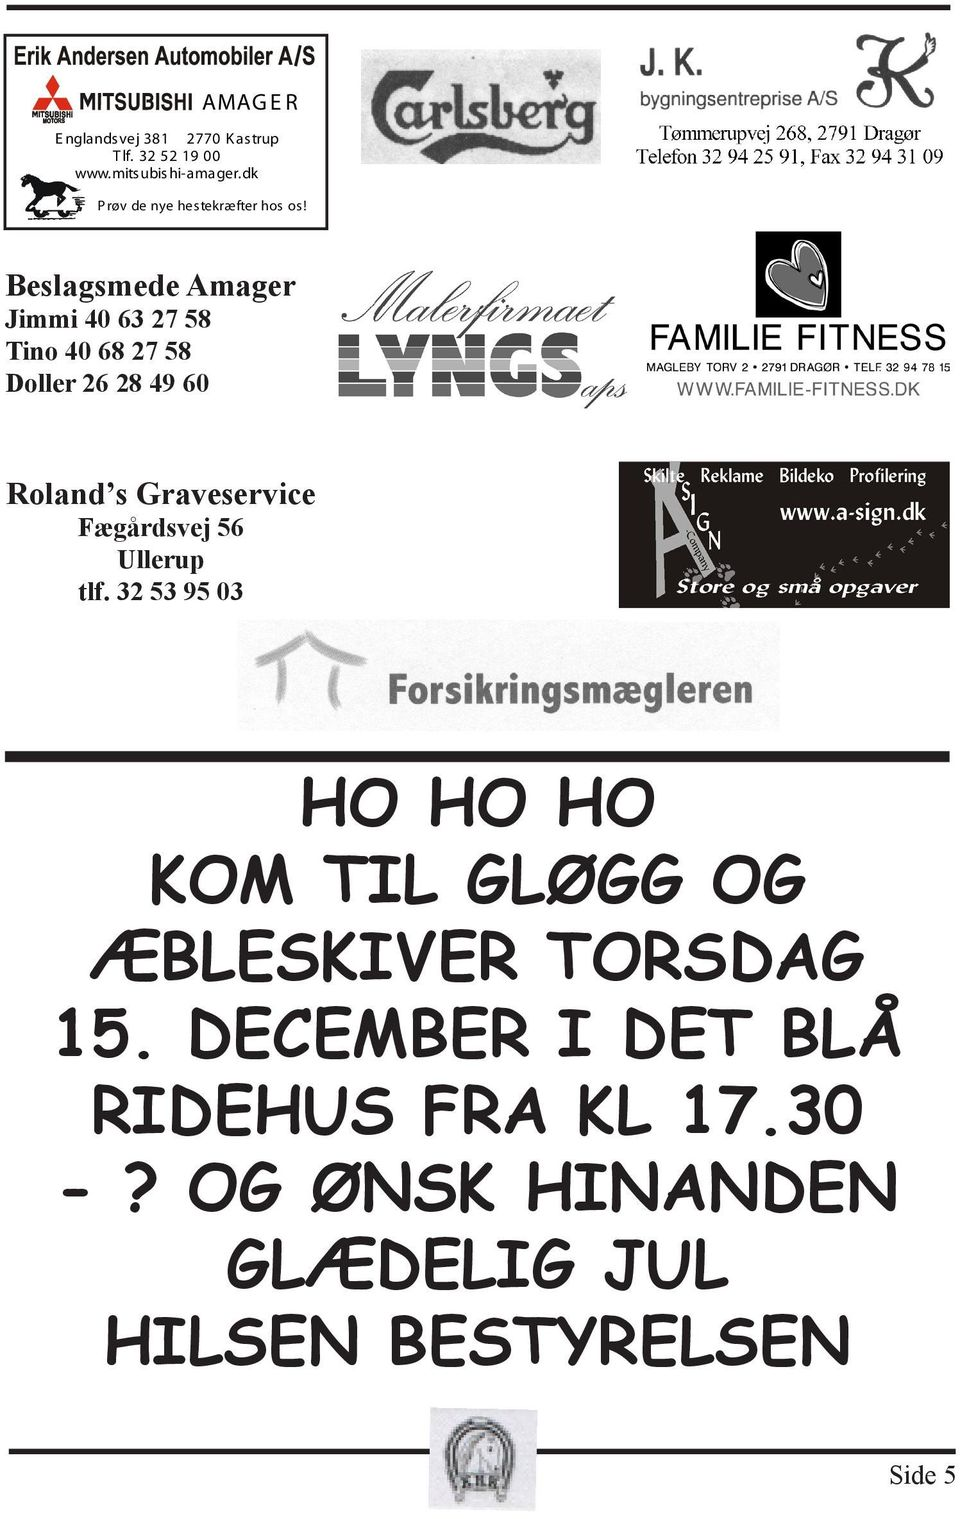 Beslagsmede Amager Jimmi 40 63 27 58 Tino 40 68 27 58 Doller 26 28 49 60 Roland s Graveservice